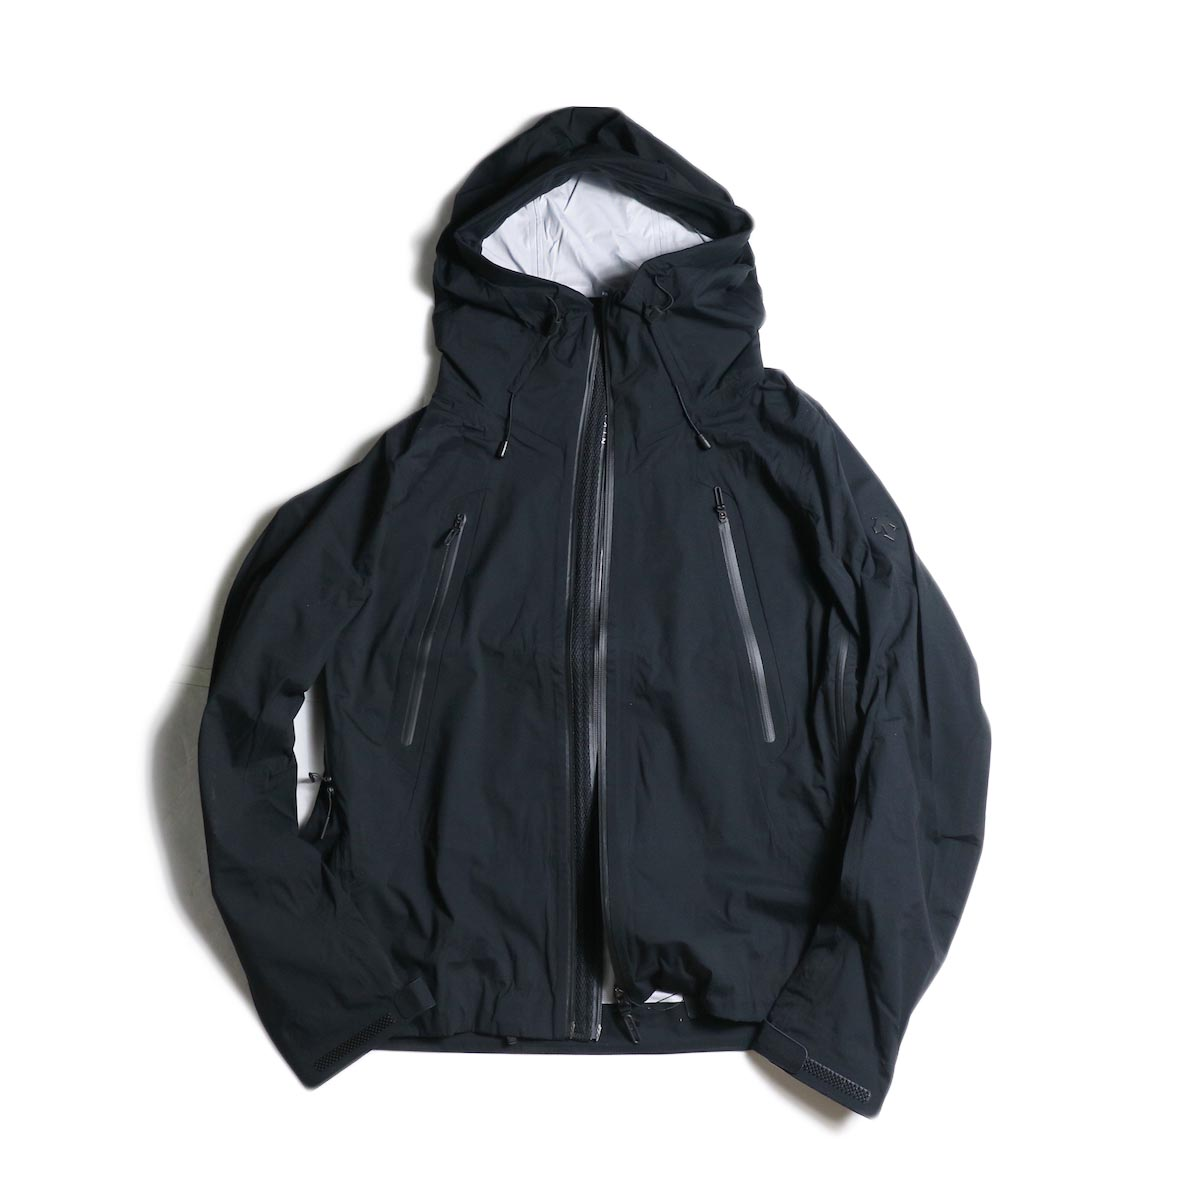 DESCENTE ALLTERAIN / FLOATECH 3L HARD SHELL JACKET